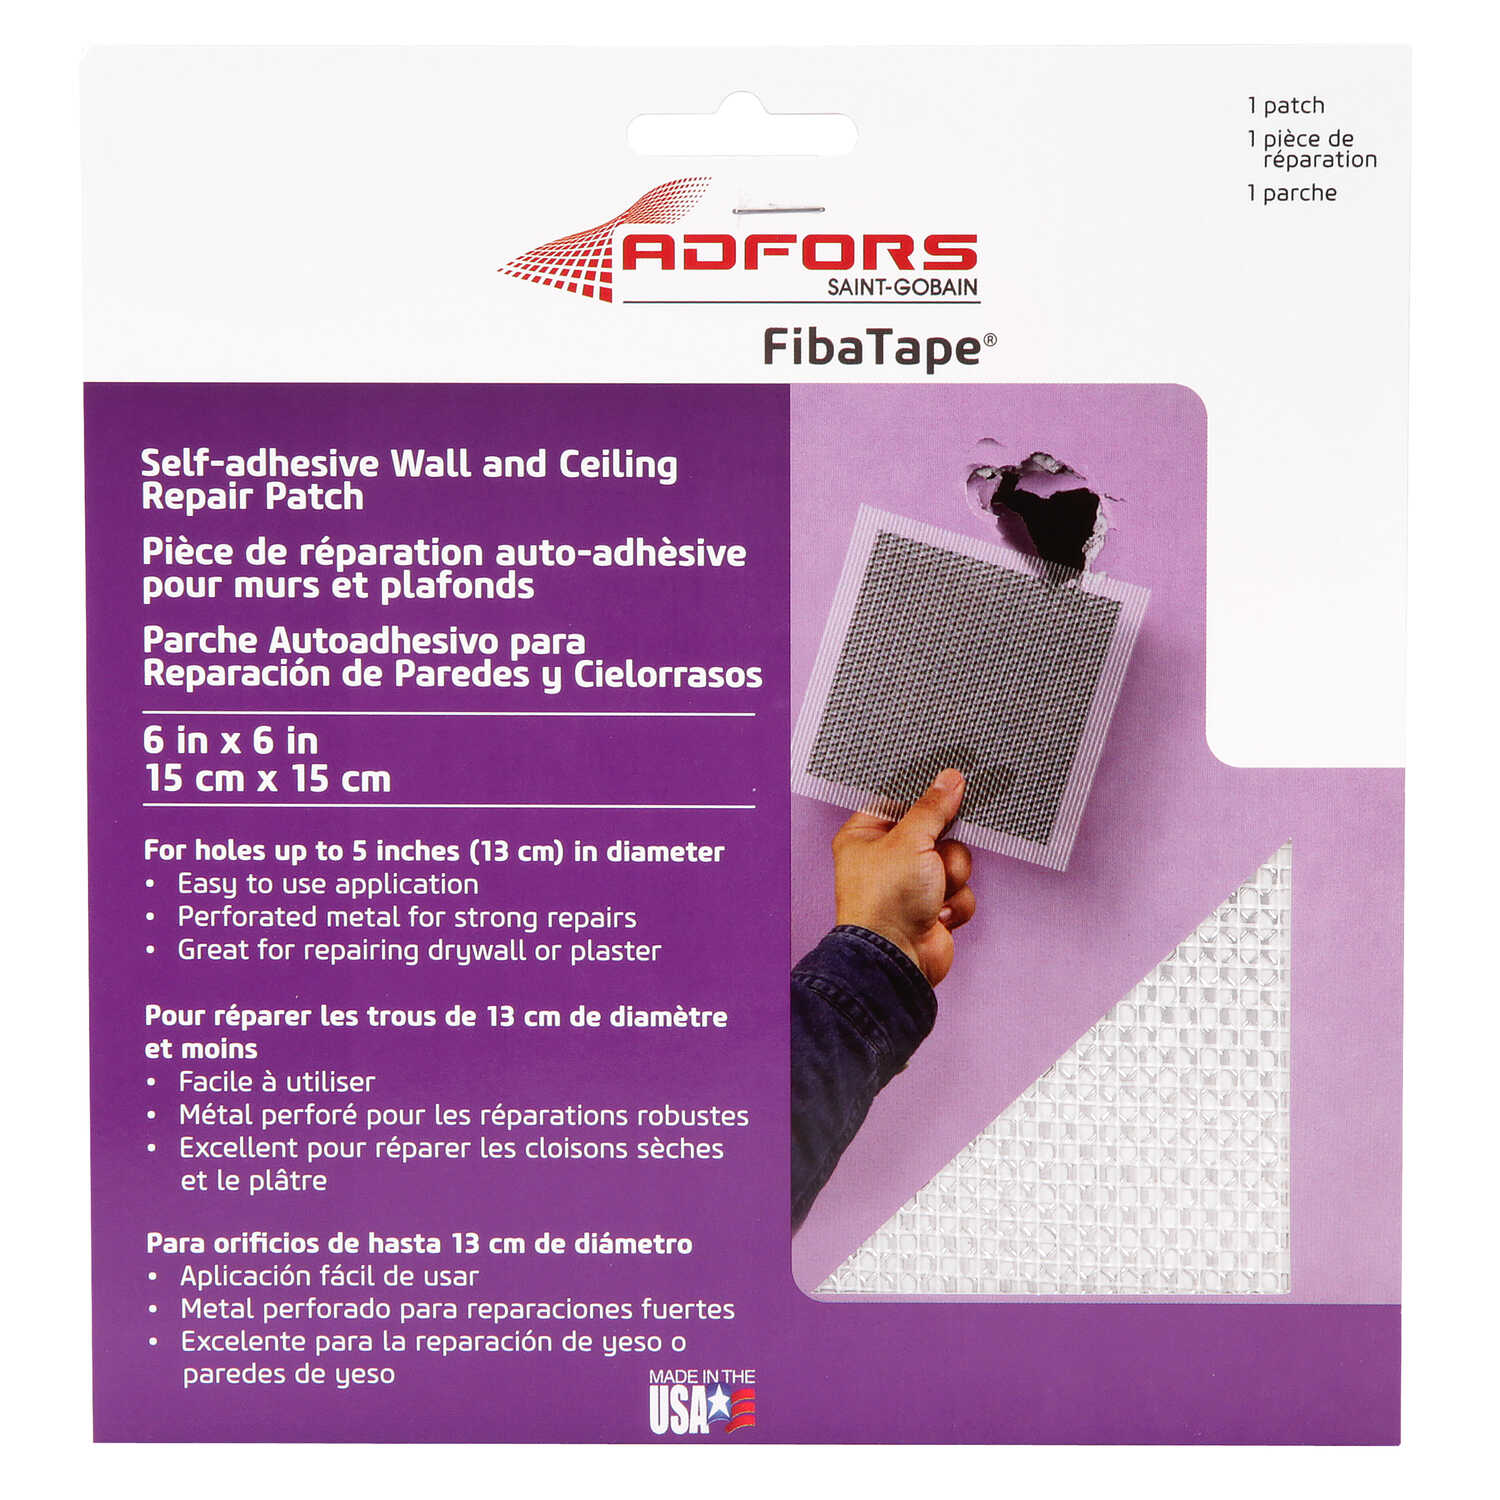 Saint-Gobain ADFORS  Fibatape  0 ft. L x 6 in. W Fiberglass Mesh  White  Wall Repair Patch  Self Adh